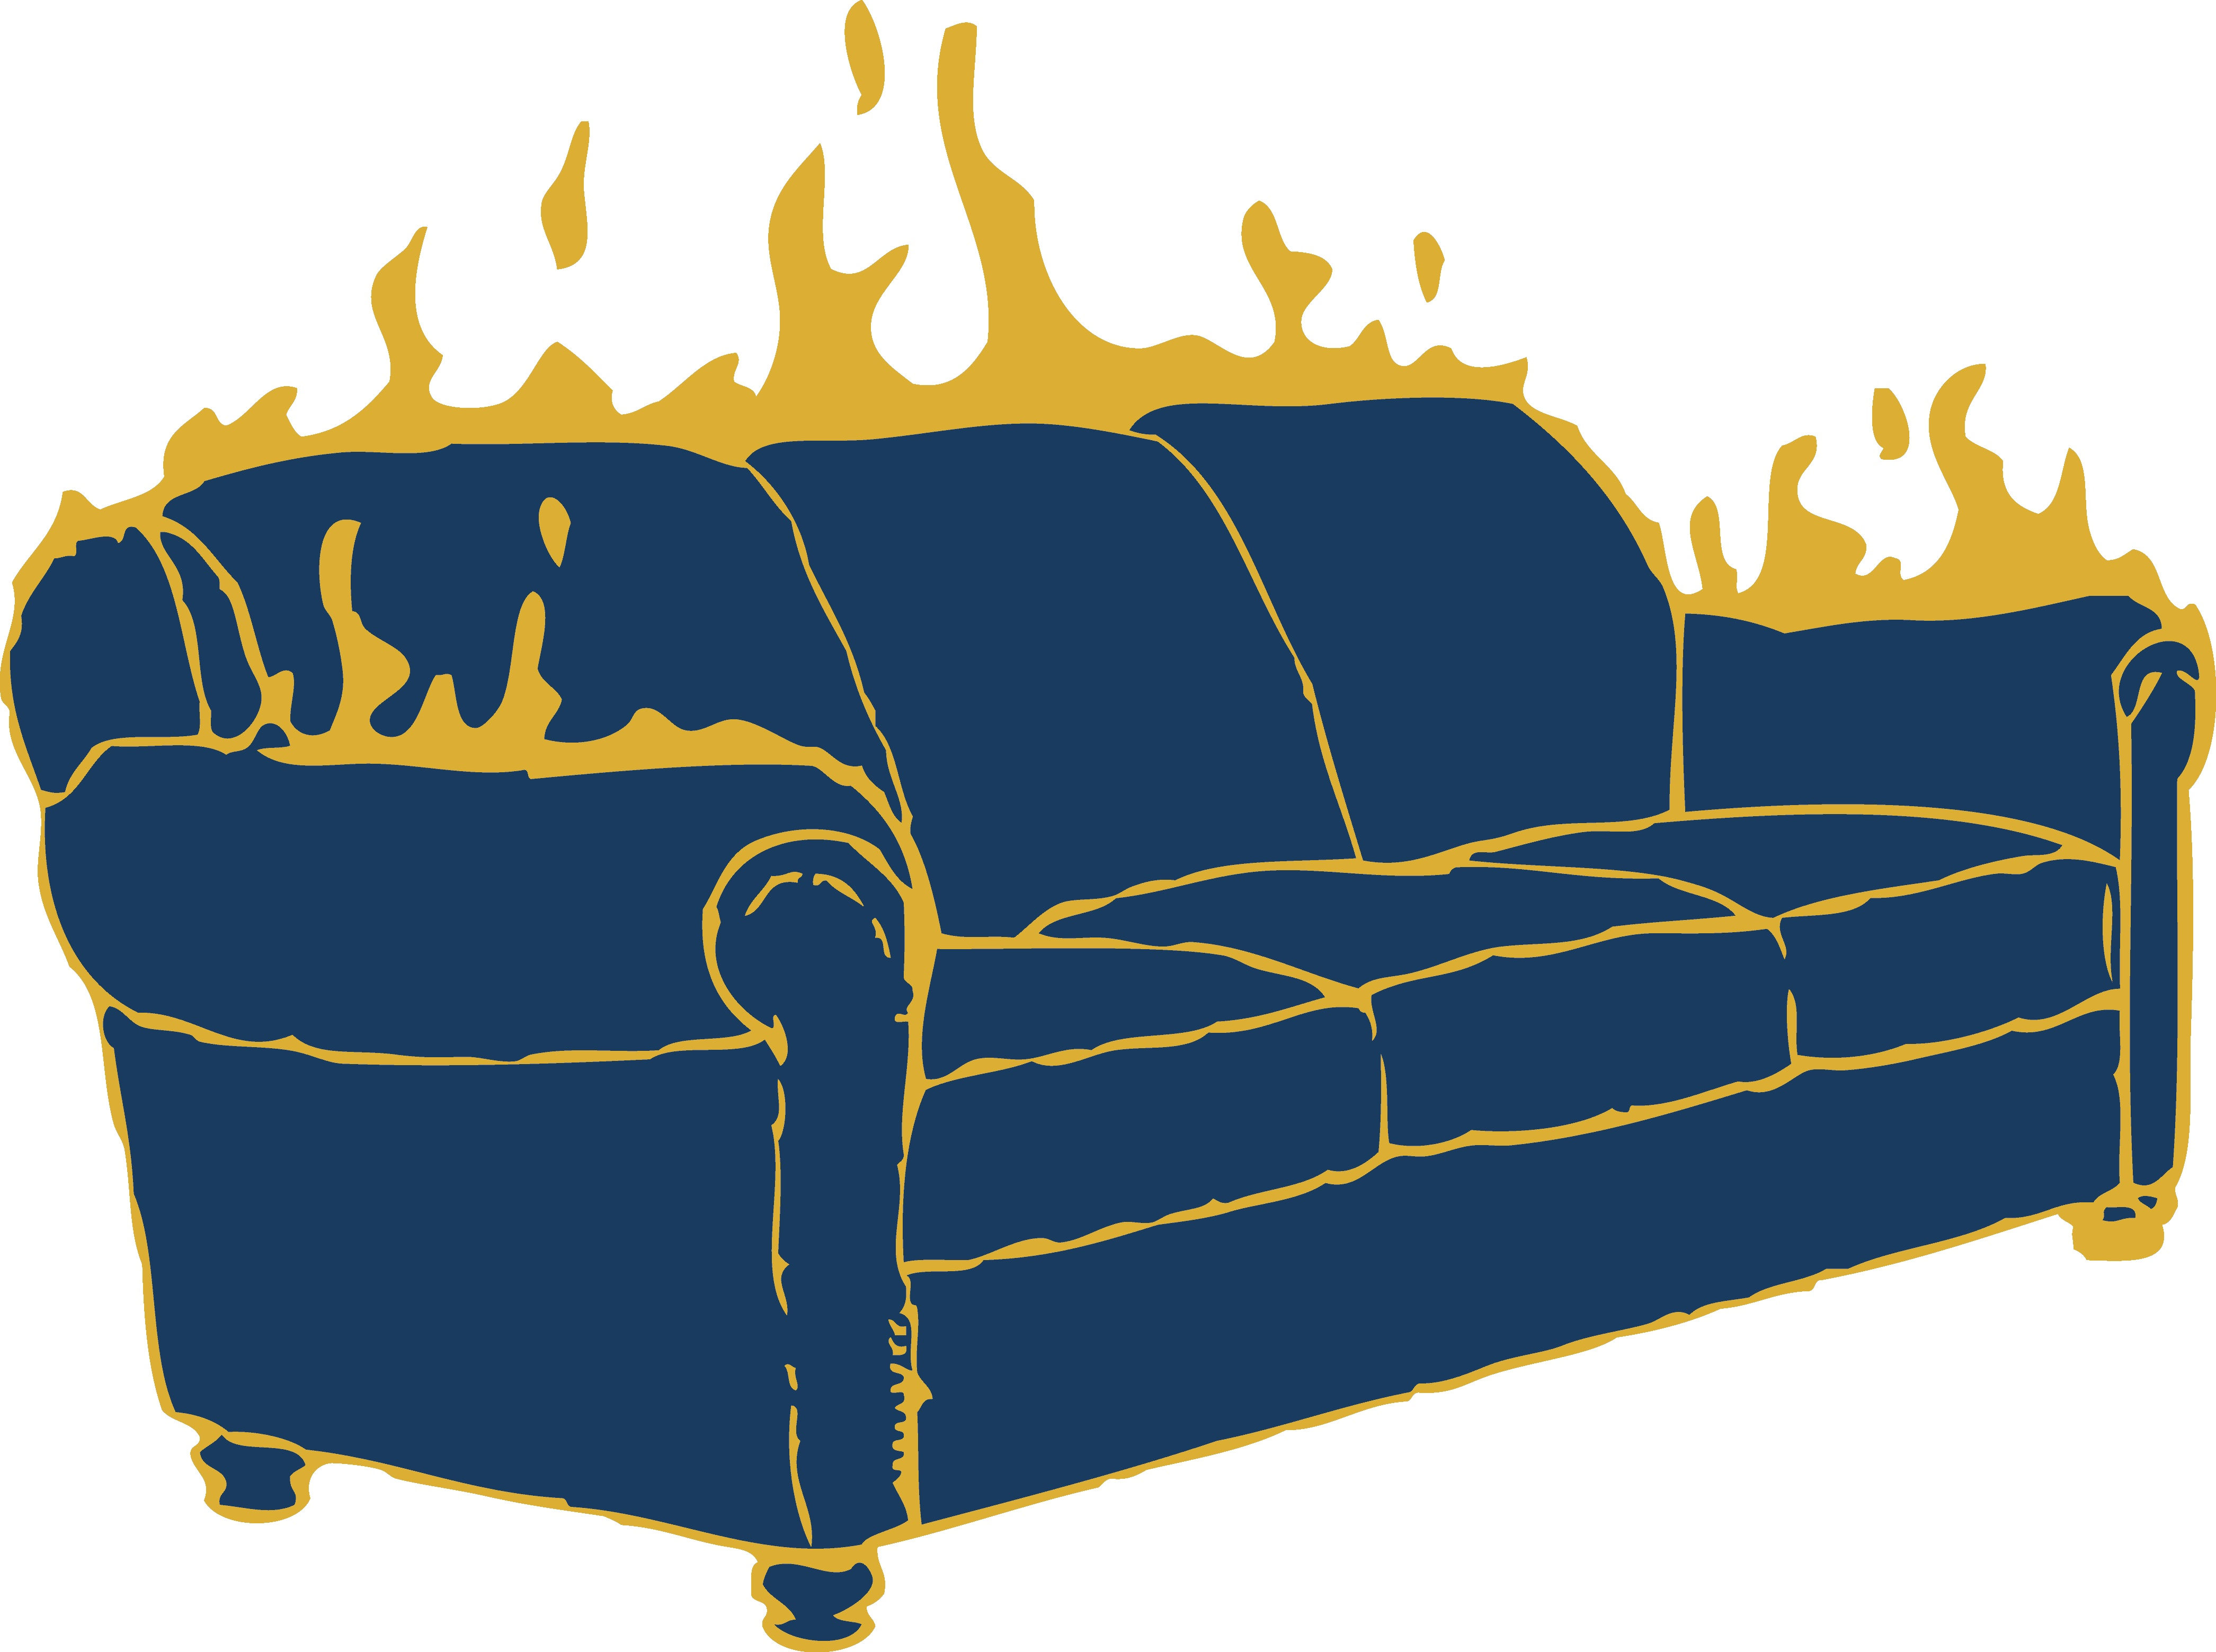 Therapy couch clipart picture download When the therapy couch is on fire | Who are you calling ... picture download